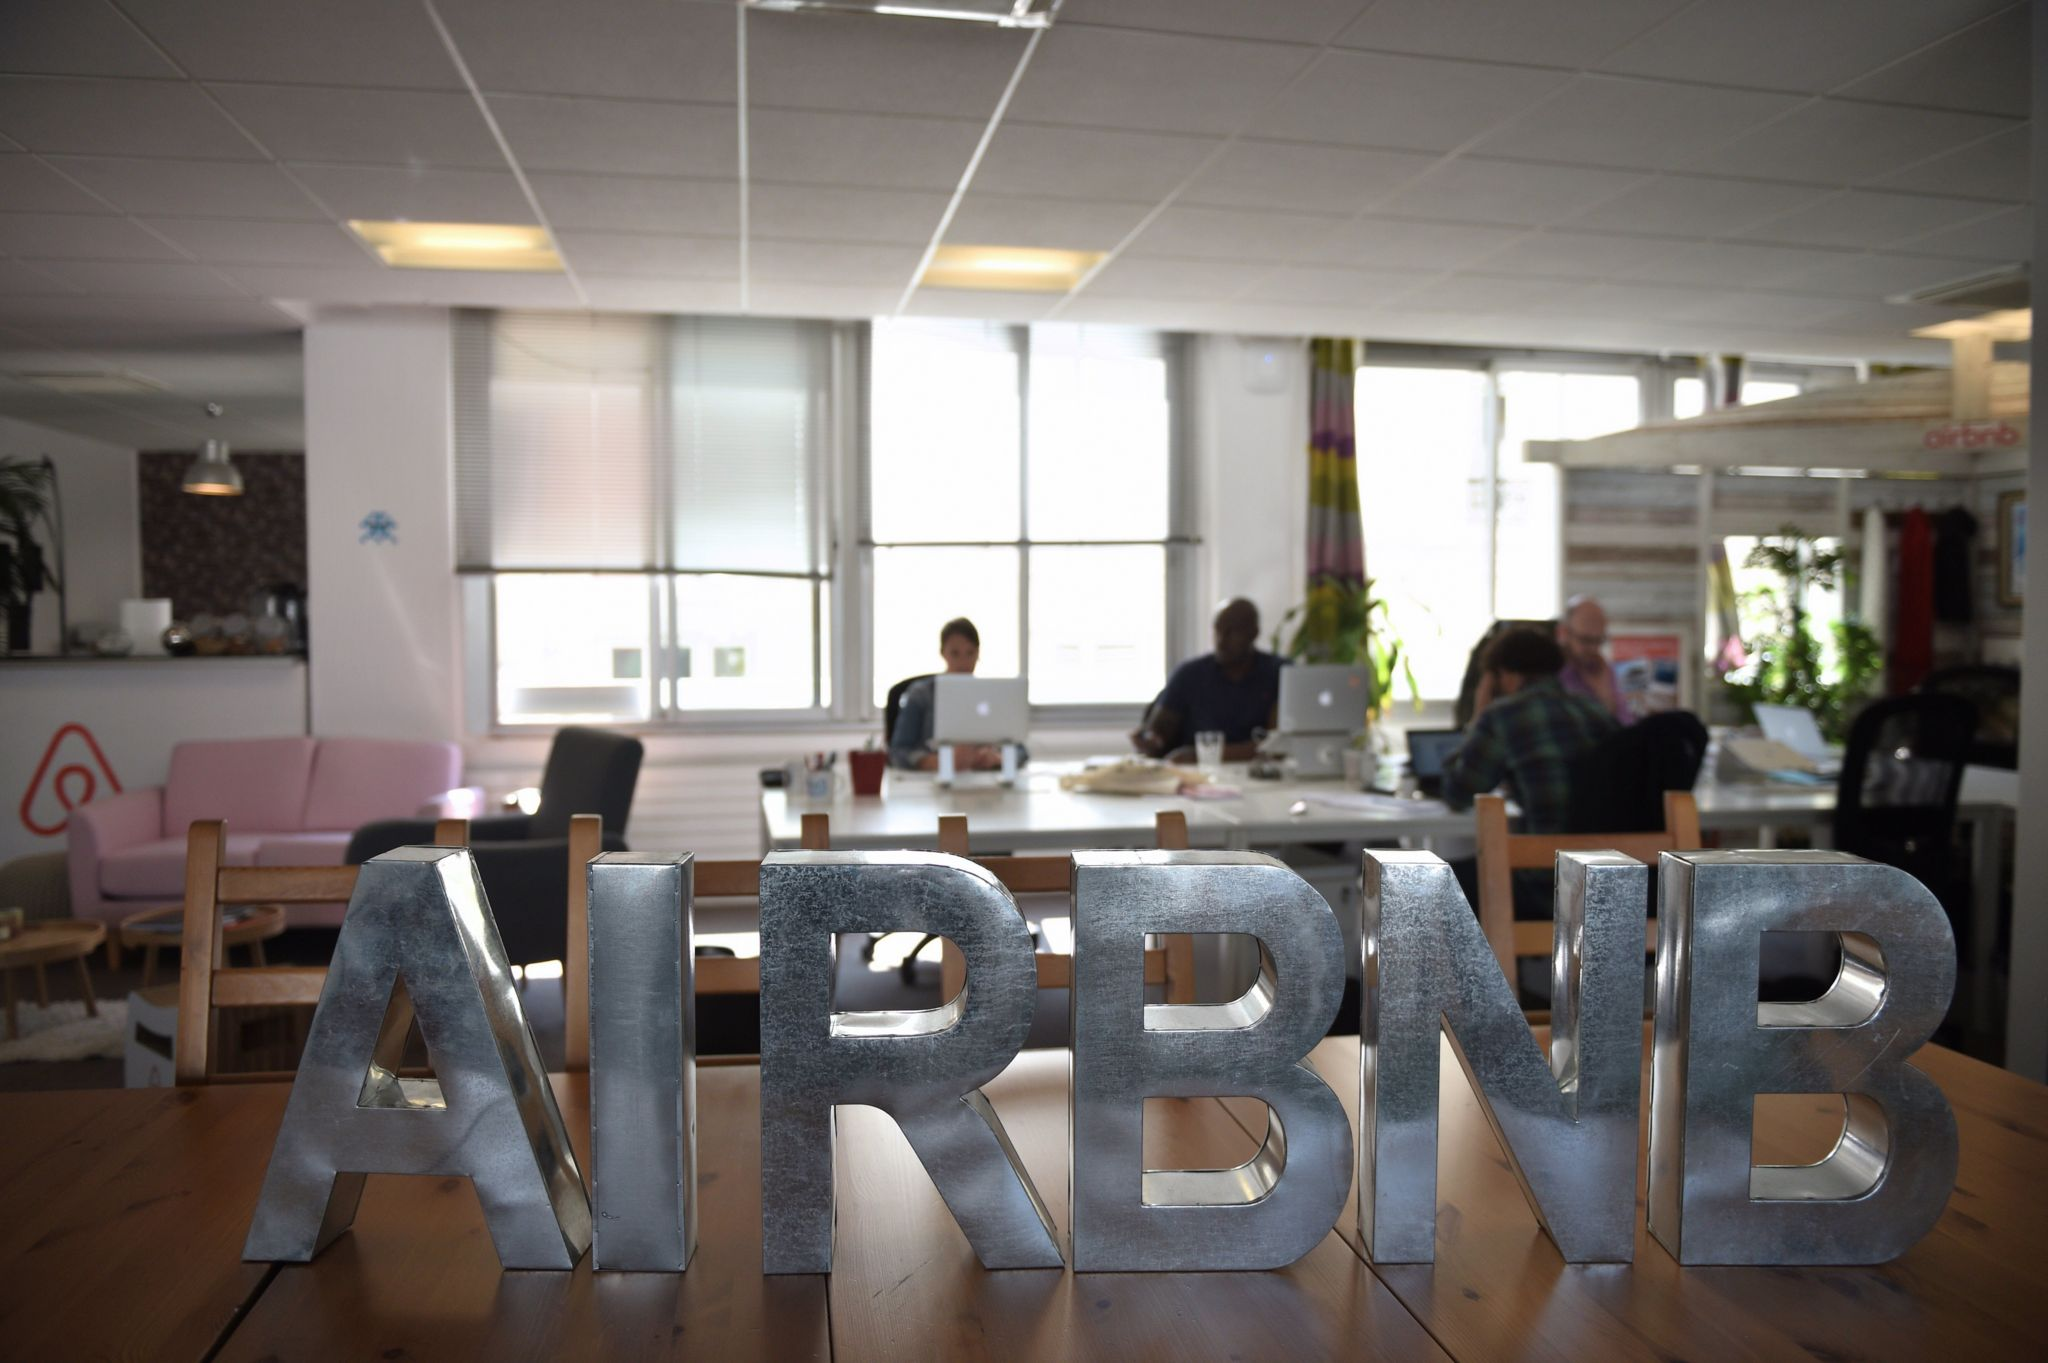 AirBnB says it is confident its existing data sharing agreements mean they are unaffected